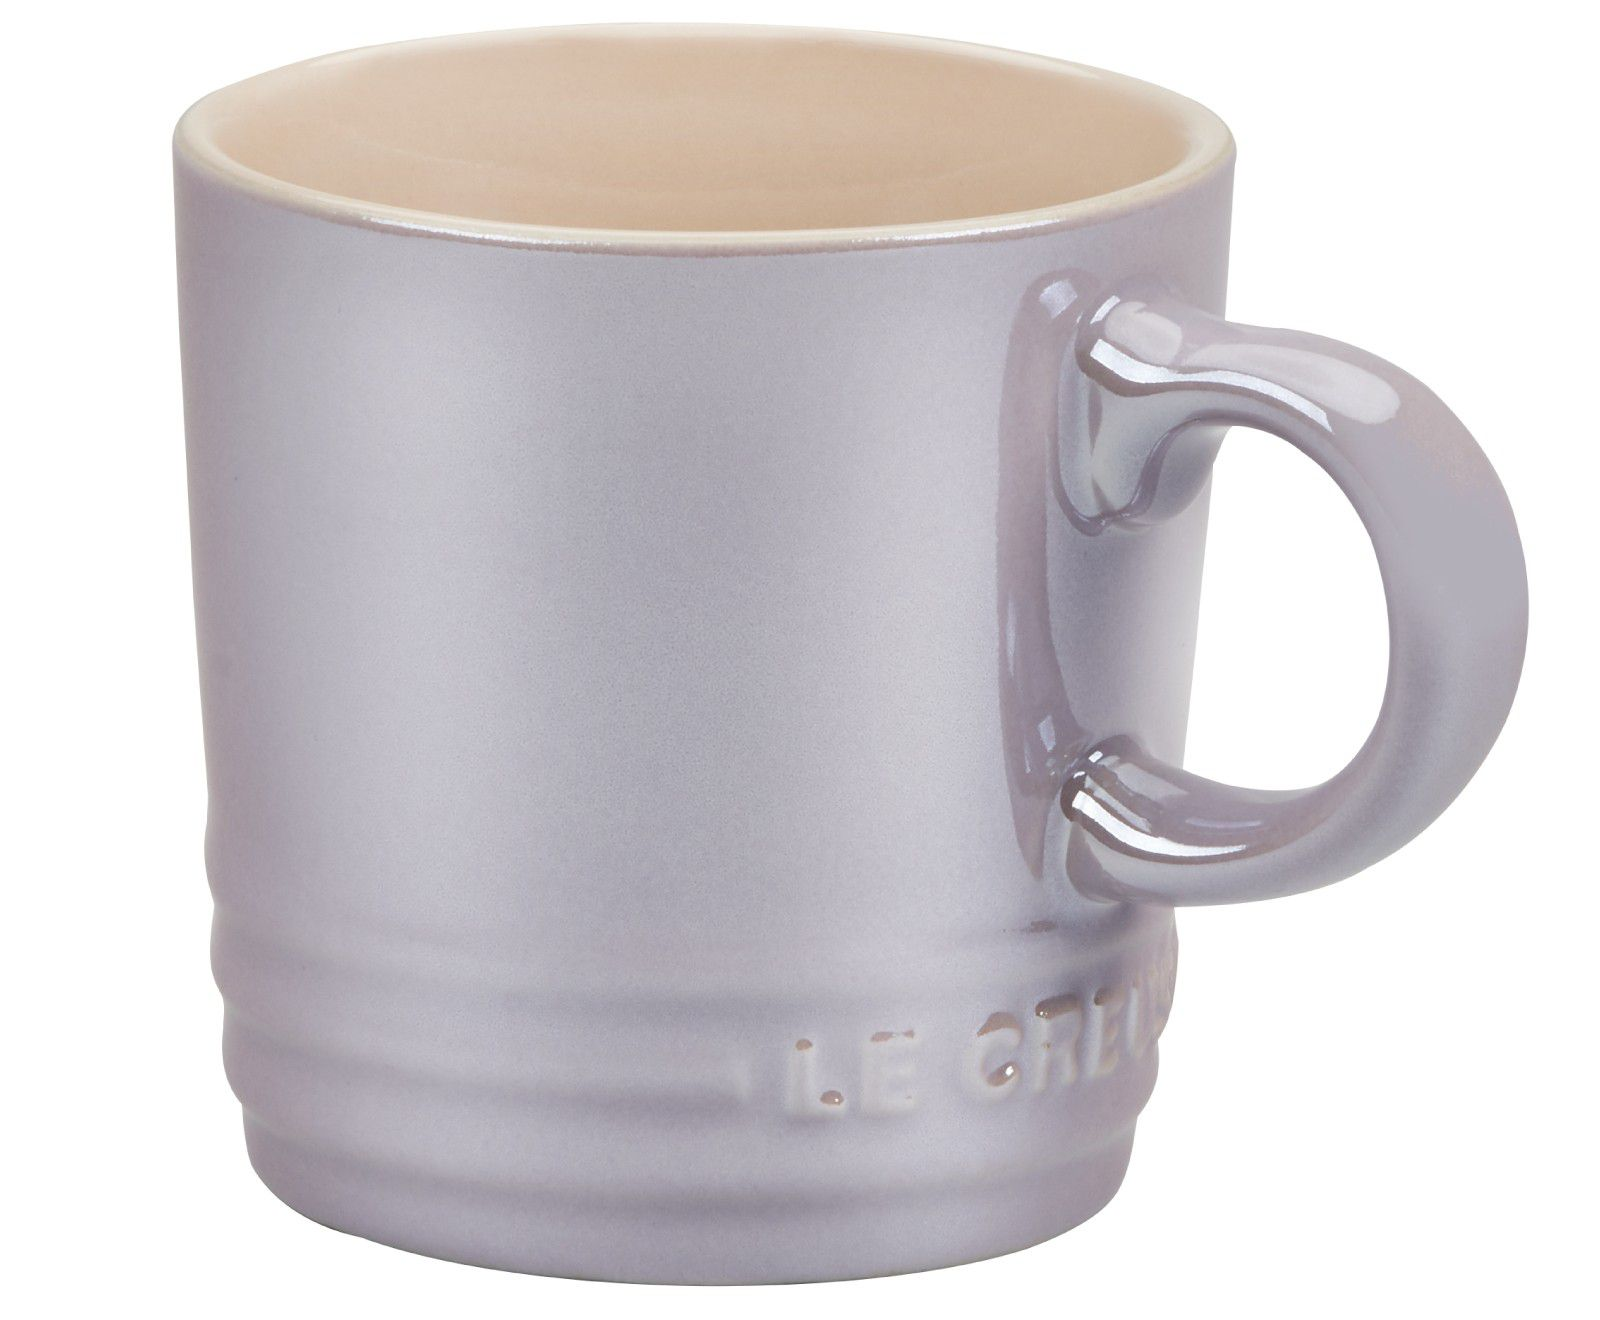 Le Creuset Metallics Collection Espresso Mug